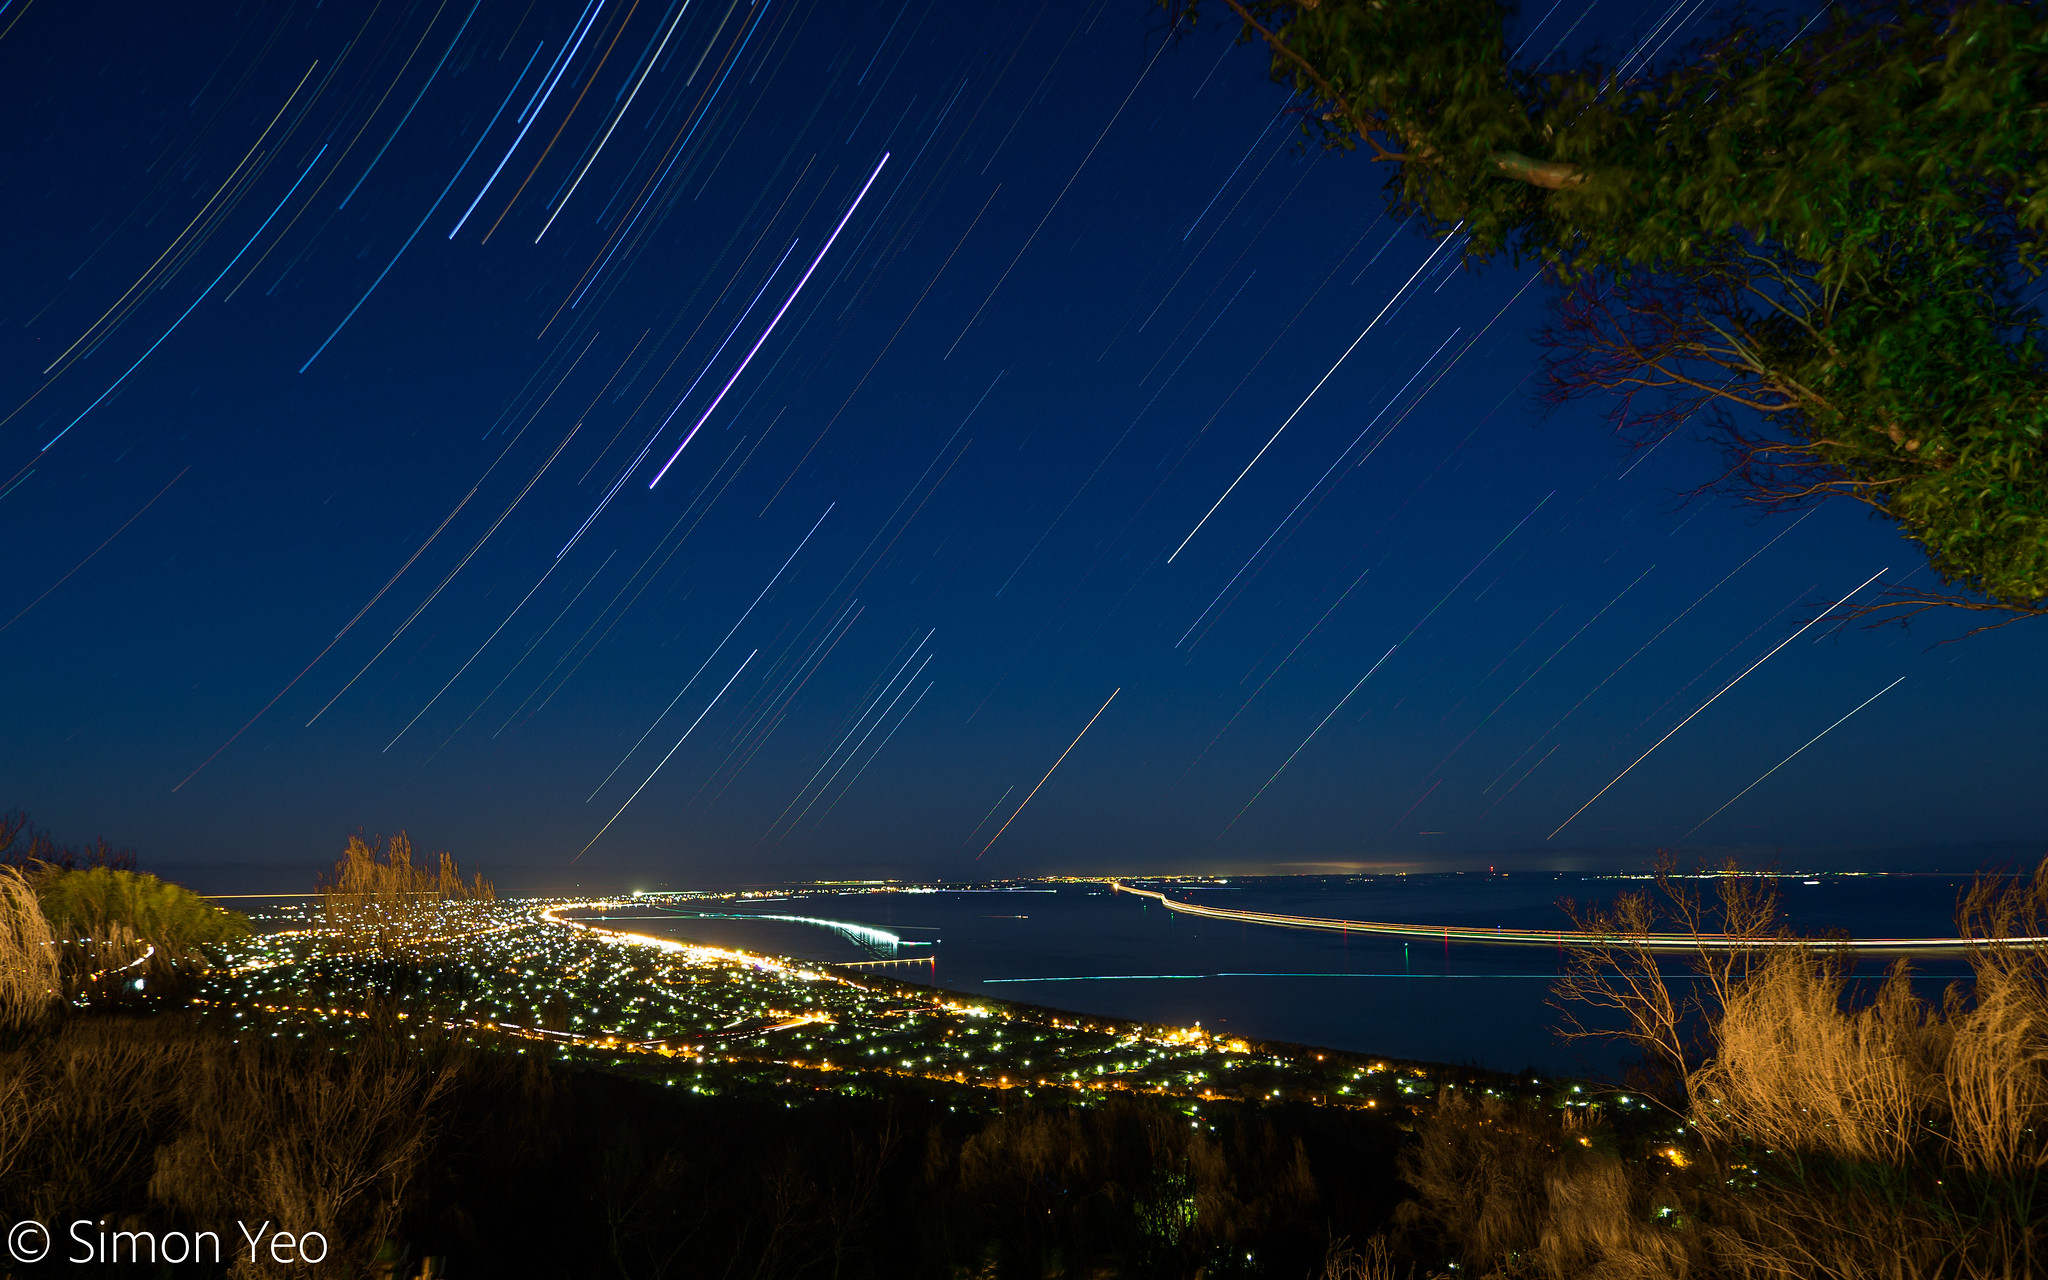 Peninsula Star Trails from Arthurs Seat by Simon Yeo on Flickr